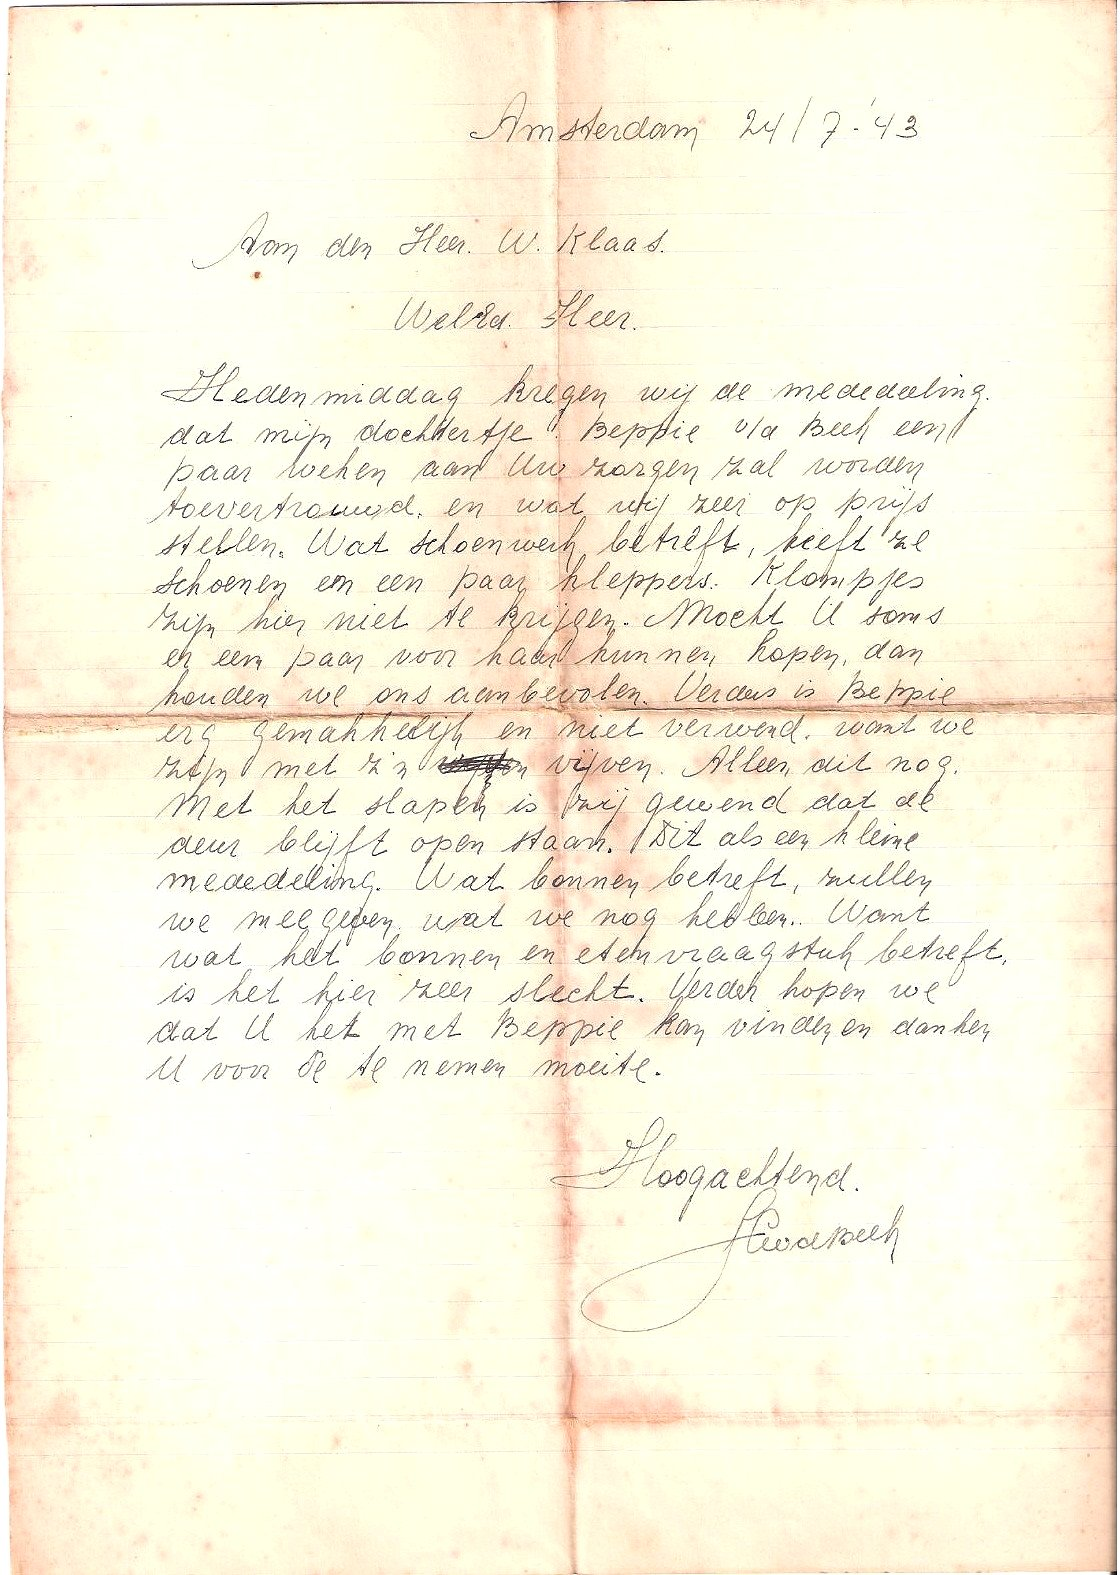 Letter from Beppie Van de Beek's Parent July 24, 1943